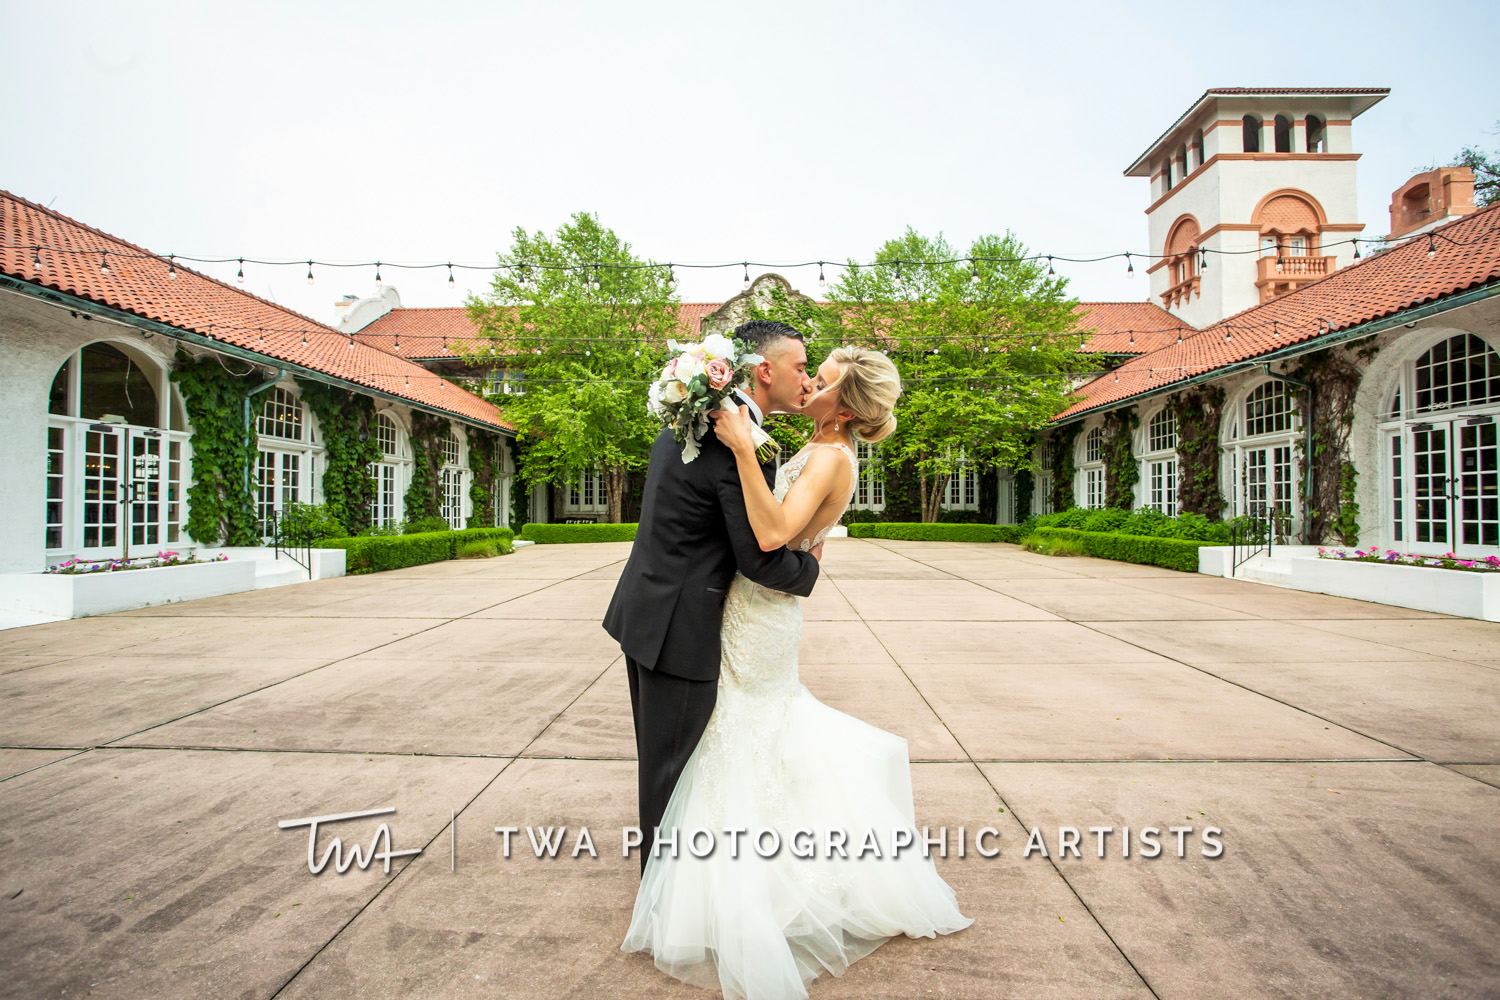 Chicago Wedding Photographers | Katie & Marco's Ravisloe Country Club Wedding | TWA Photographic Artists